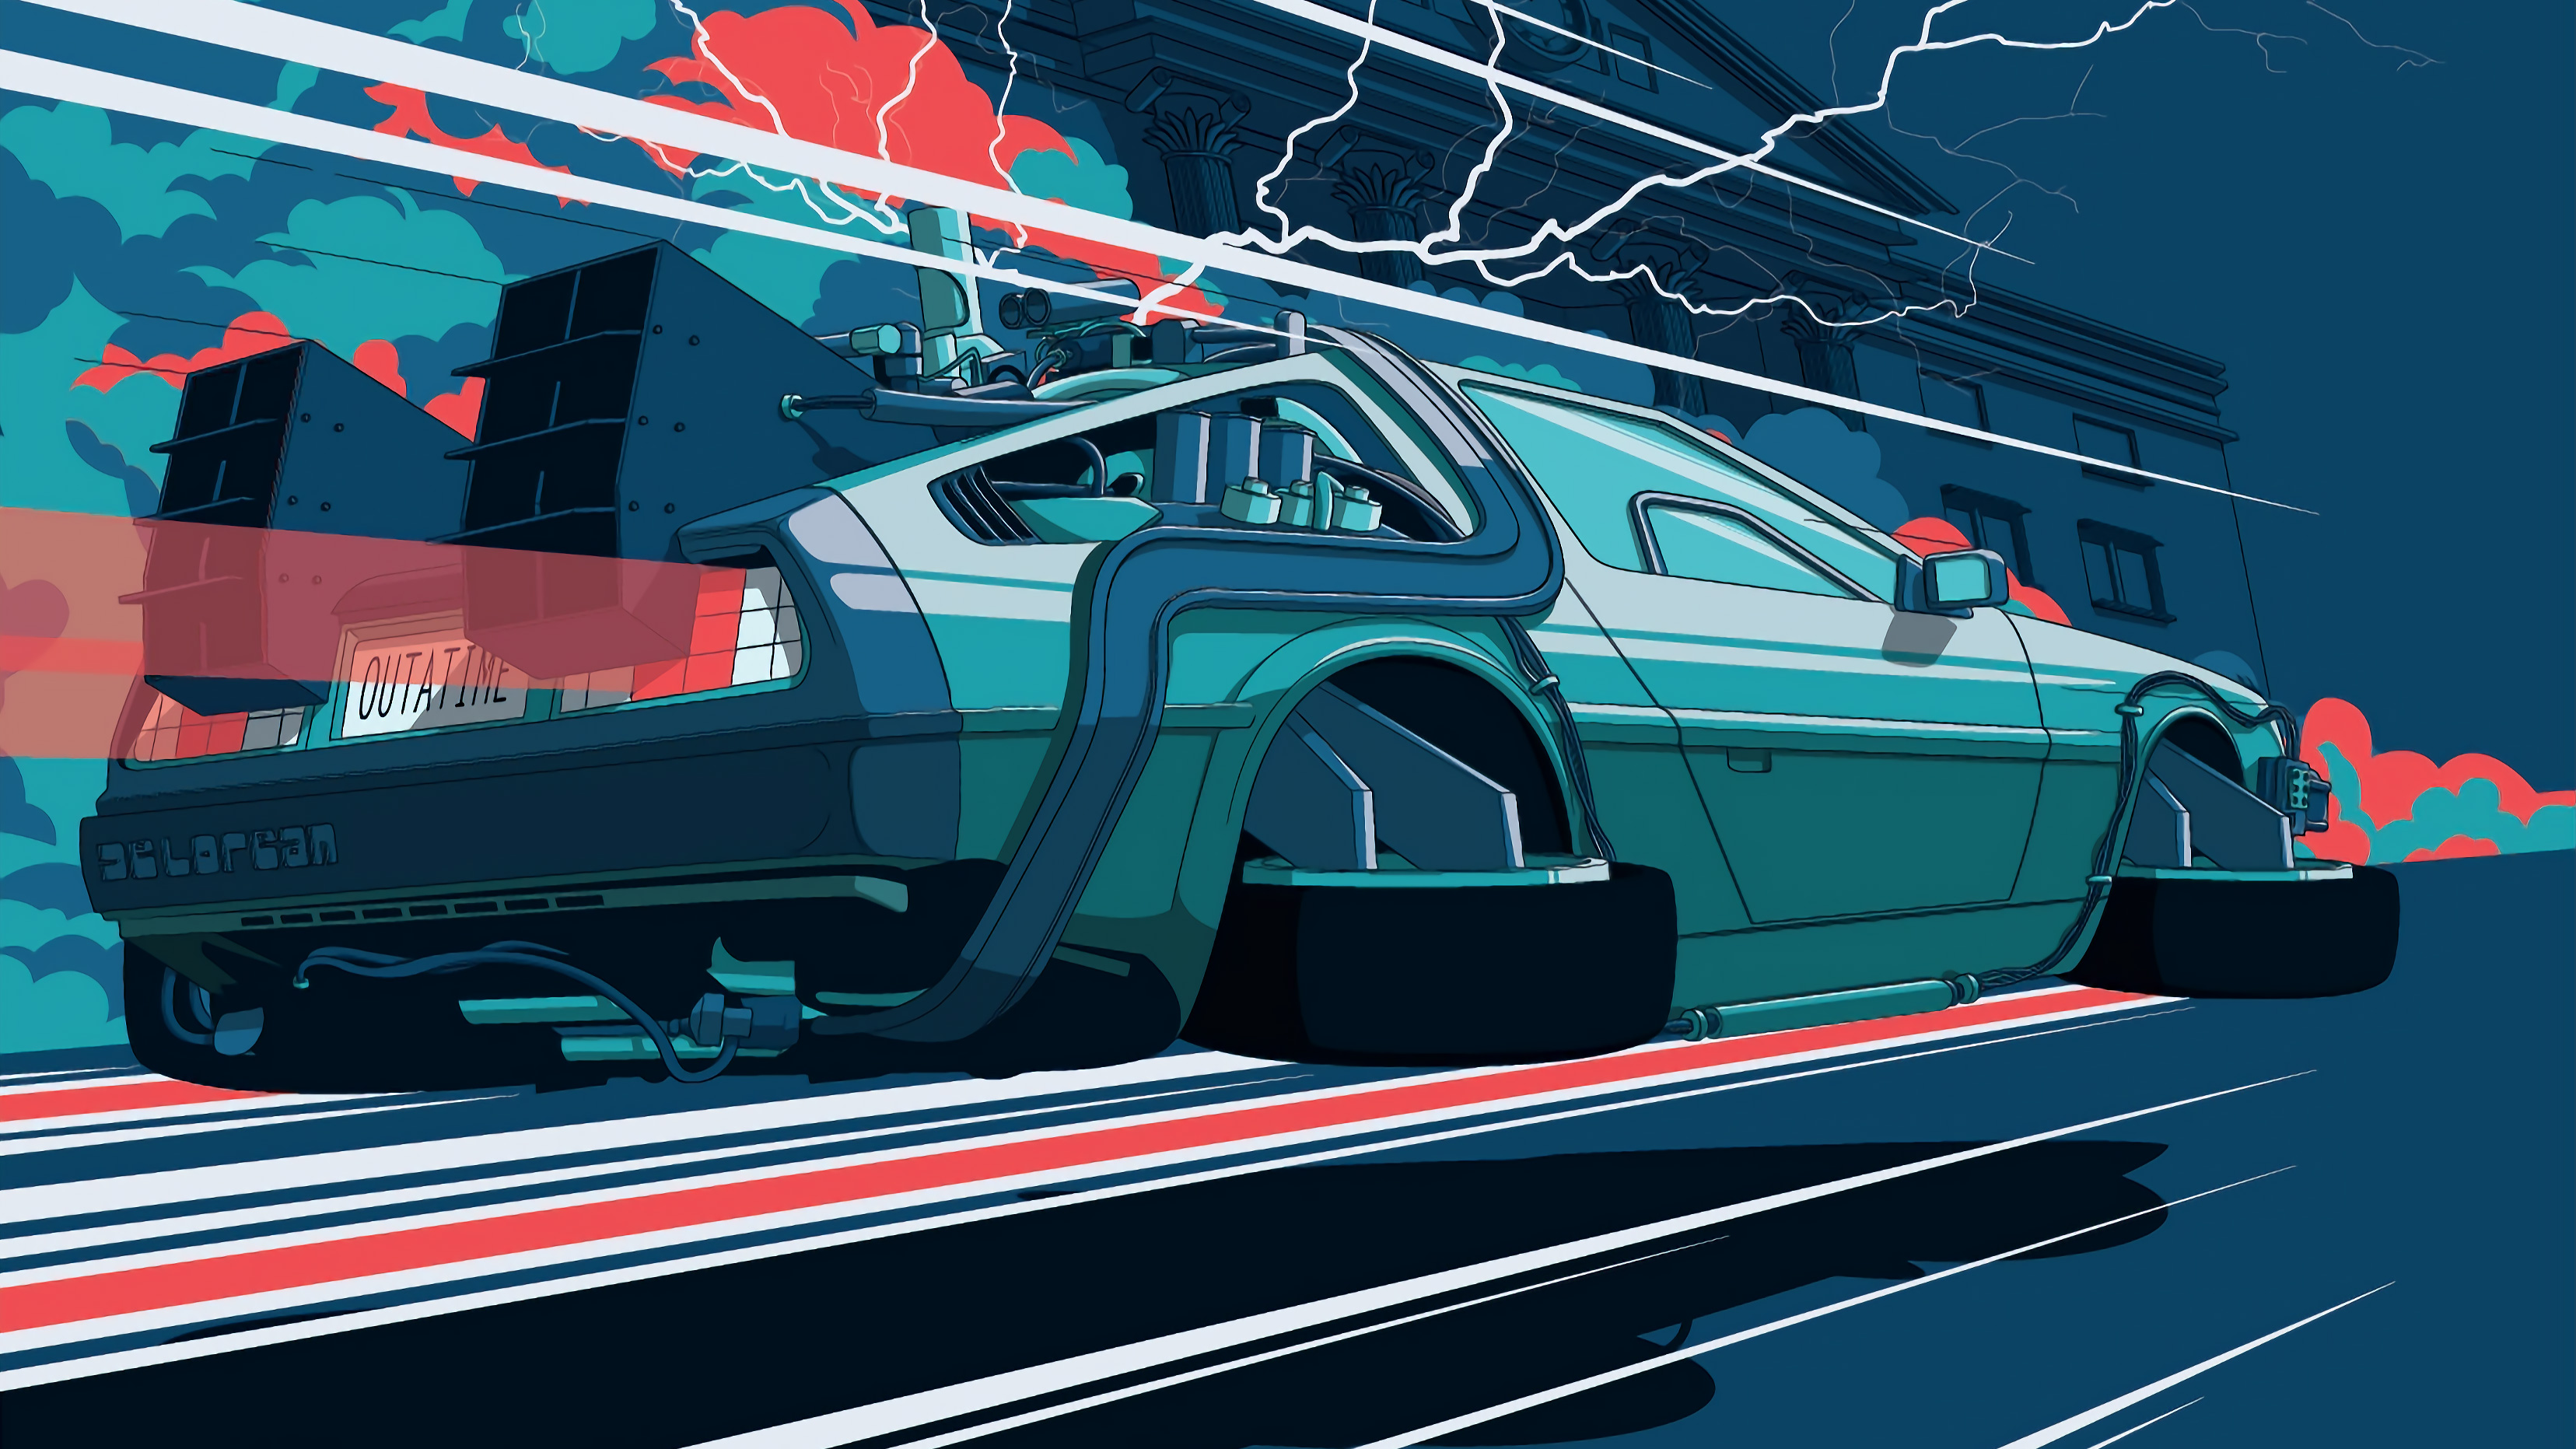 Back To The Future Car Illustration 4k Hd Artist 4k Wallpapers